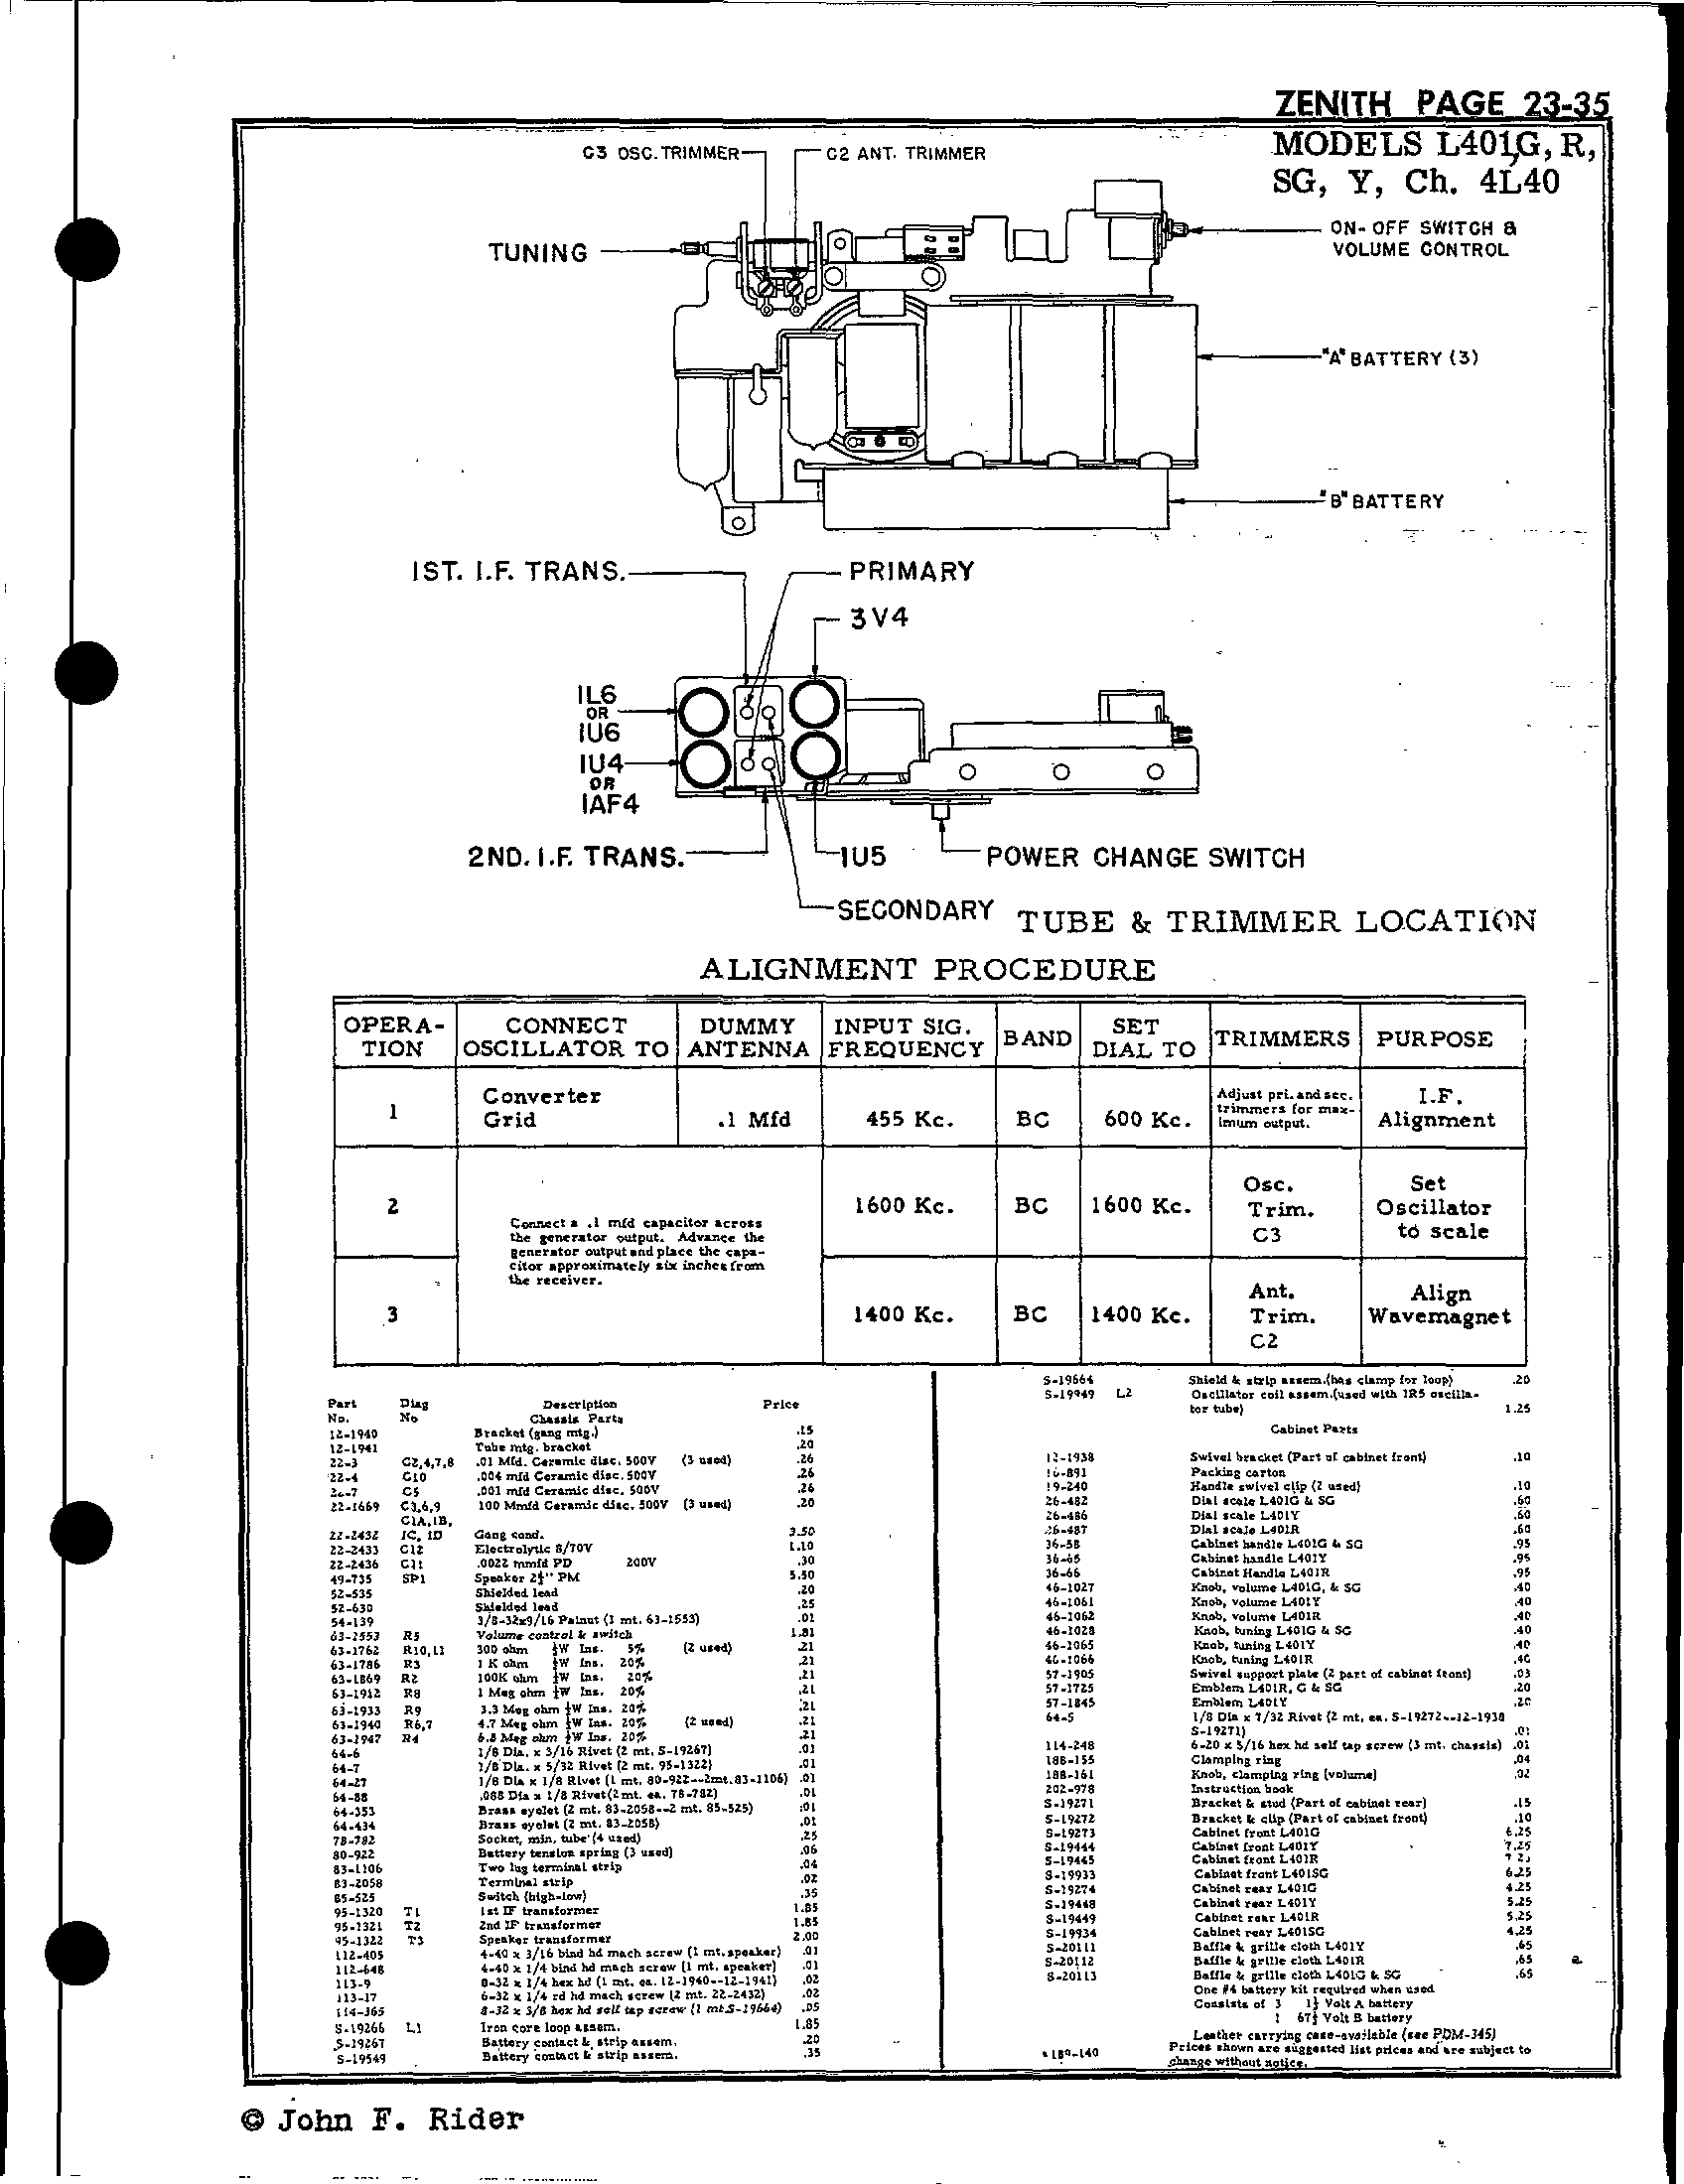 Zenith Radio Corp L401 Antique Electronic Supply. Page 1 5821 Kb Rider Manual Volume 23. Wiring. Zenith Tube Radio Schematics 1938 At Scoala.co